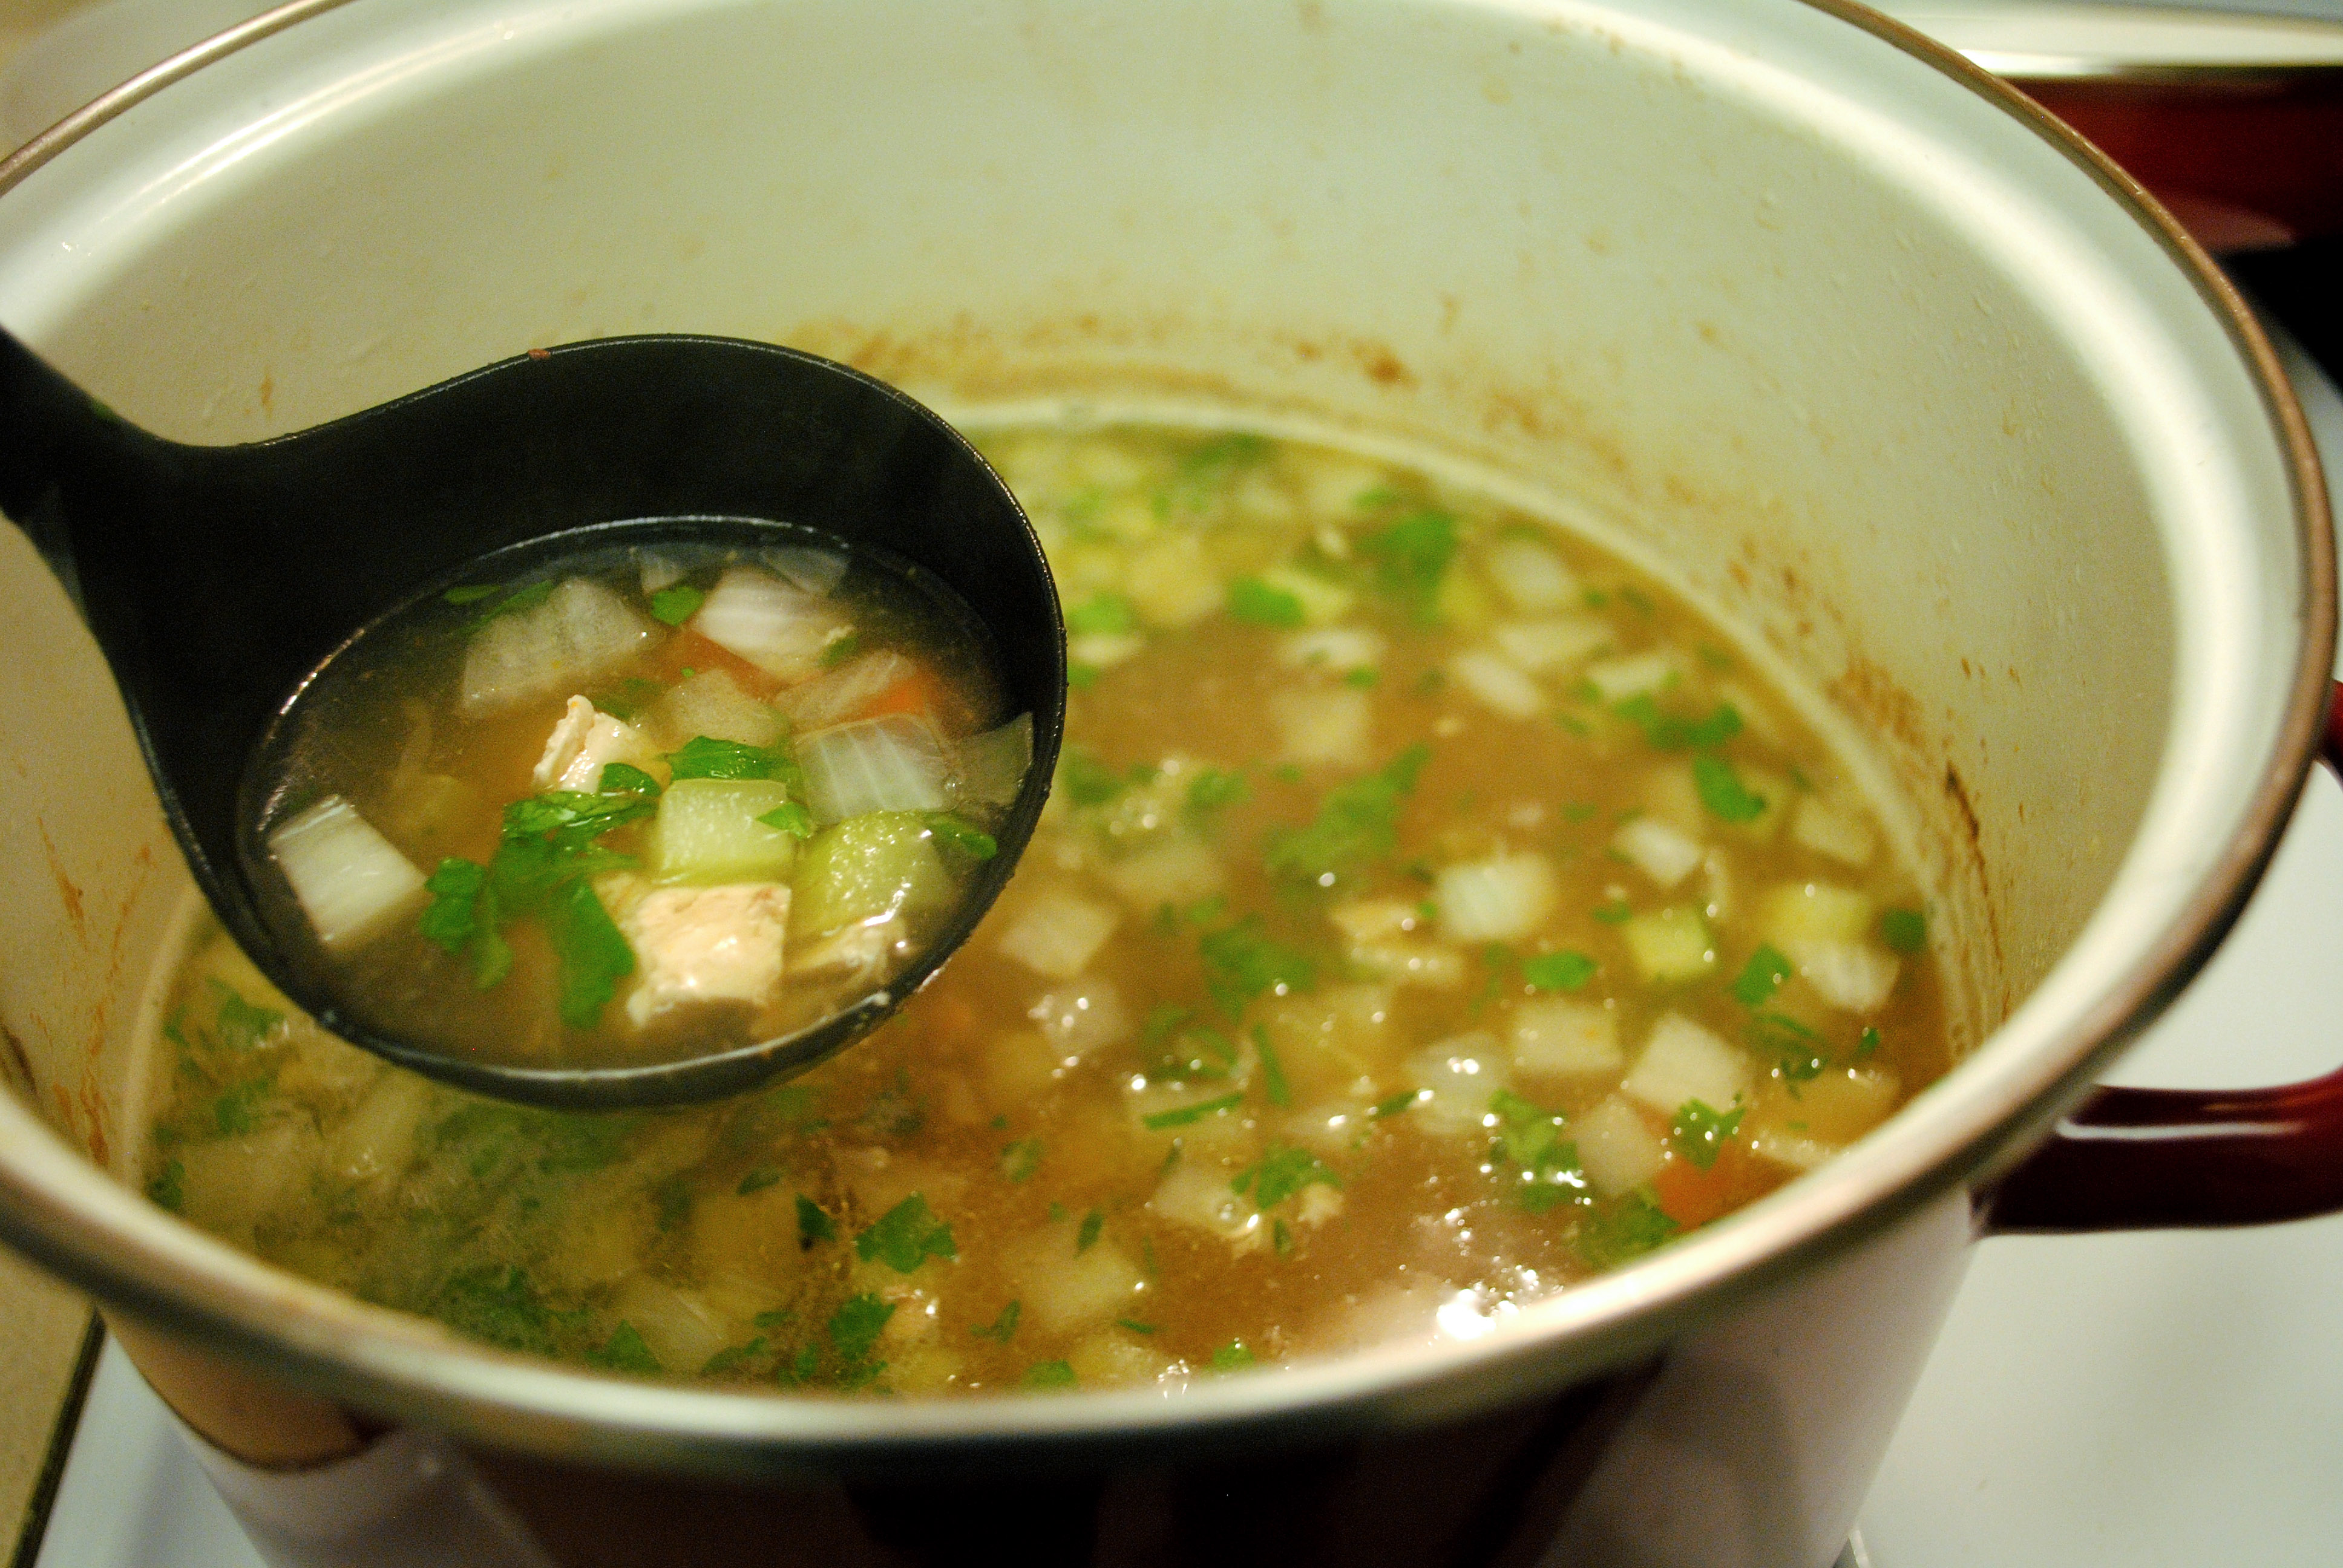 Soup from chicken breasts